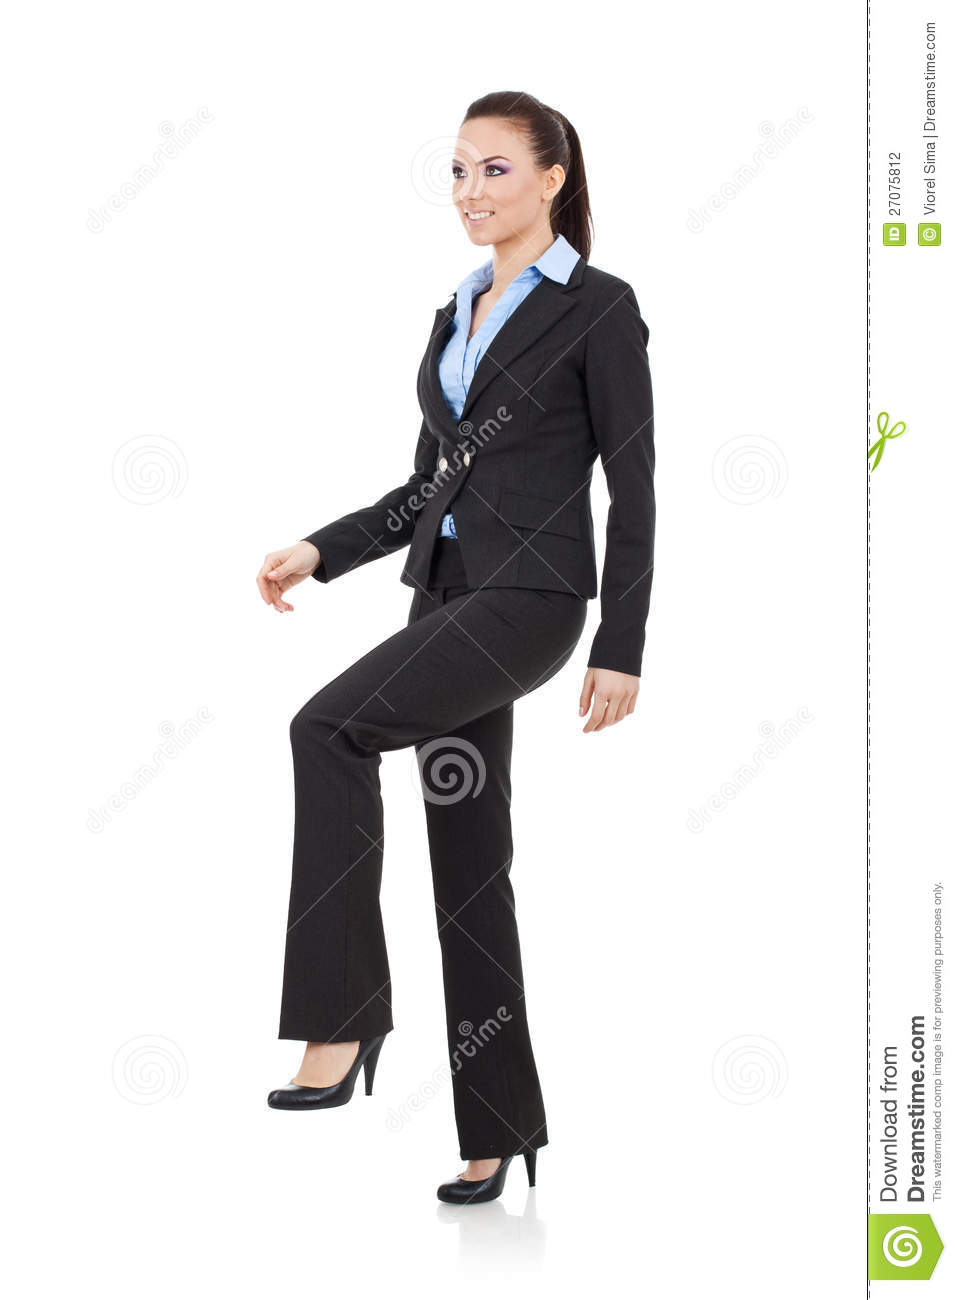 Woman Stepping On Imaginary Step Stock Photo - Image of ...